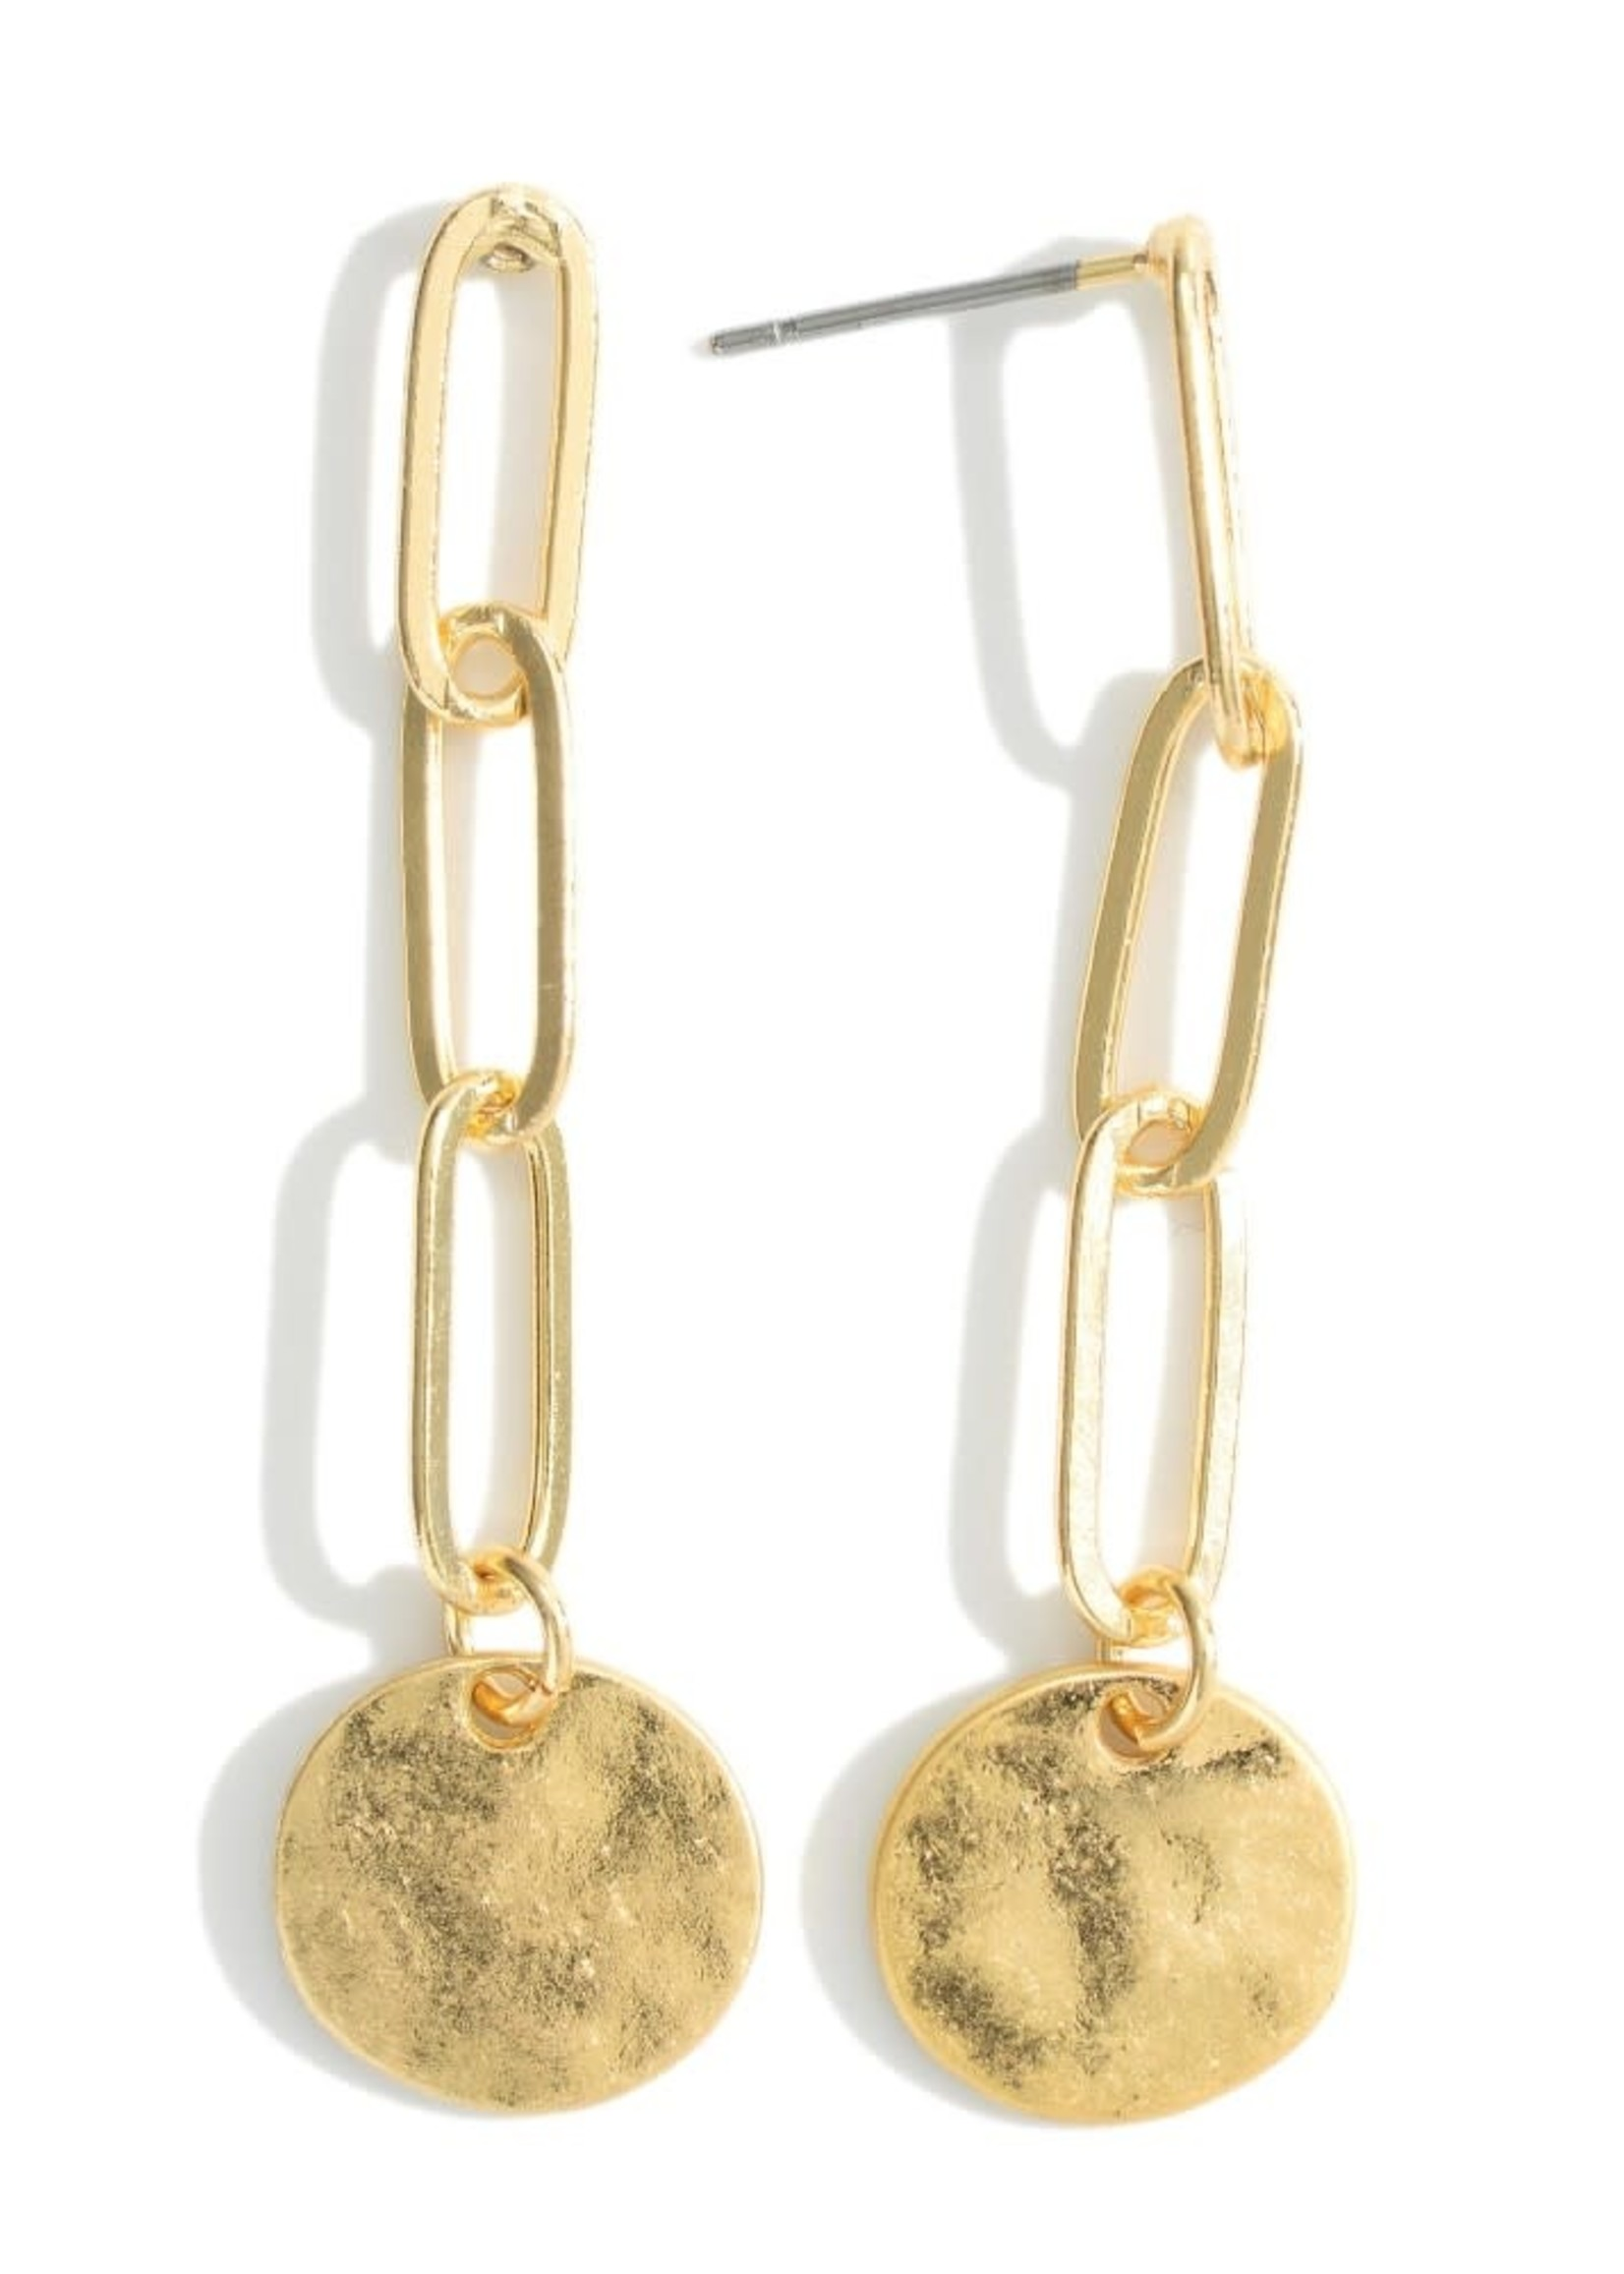 Metal Chain Earrings Featuring Hammered Disc Pendant